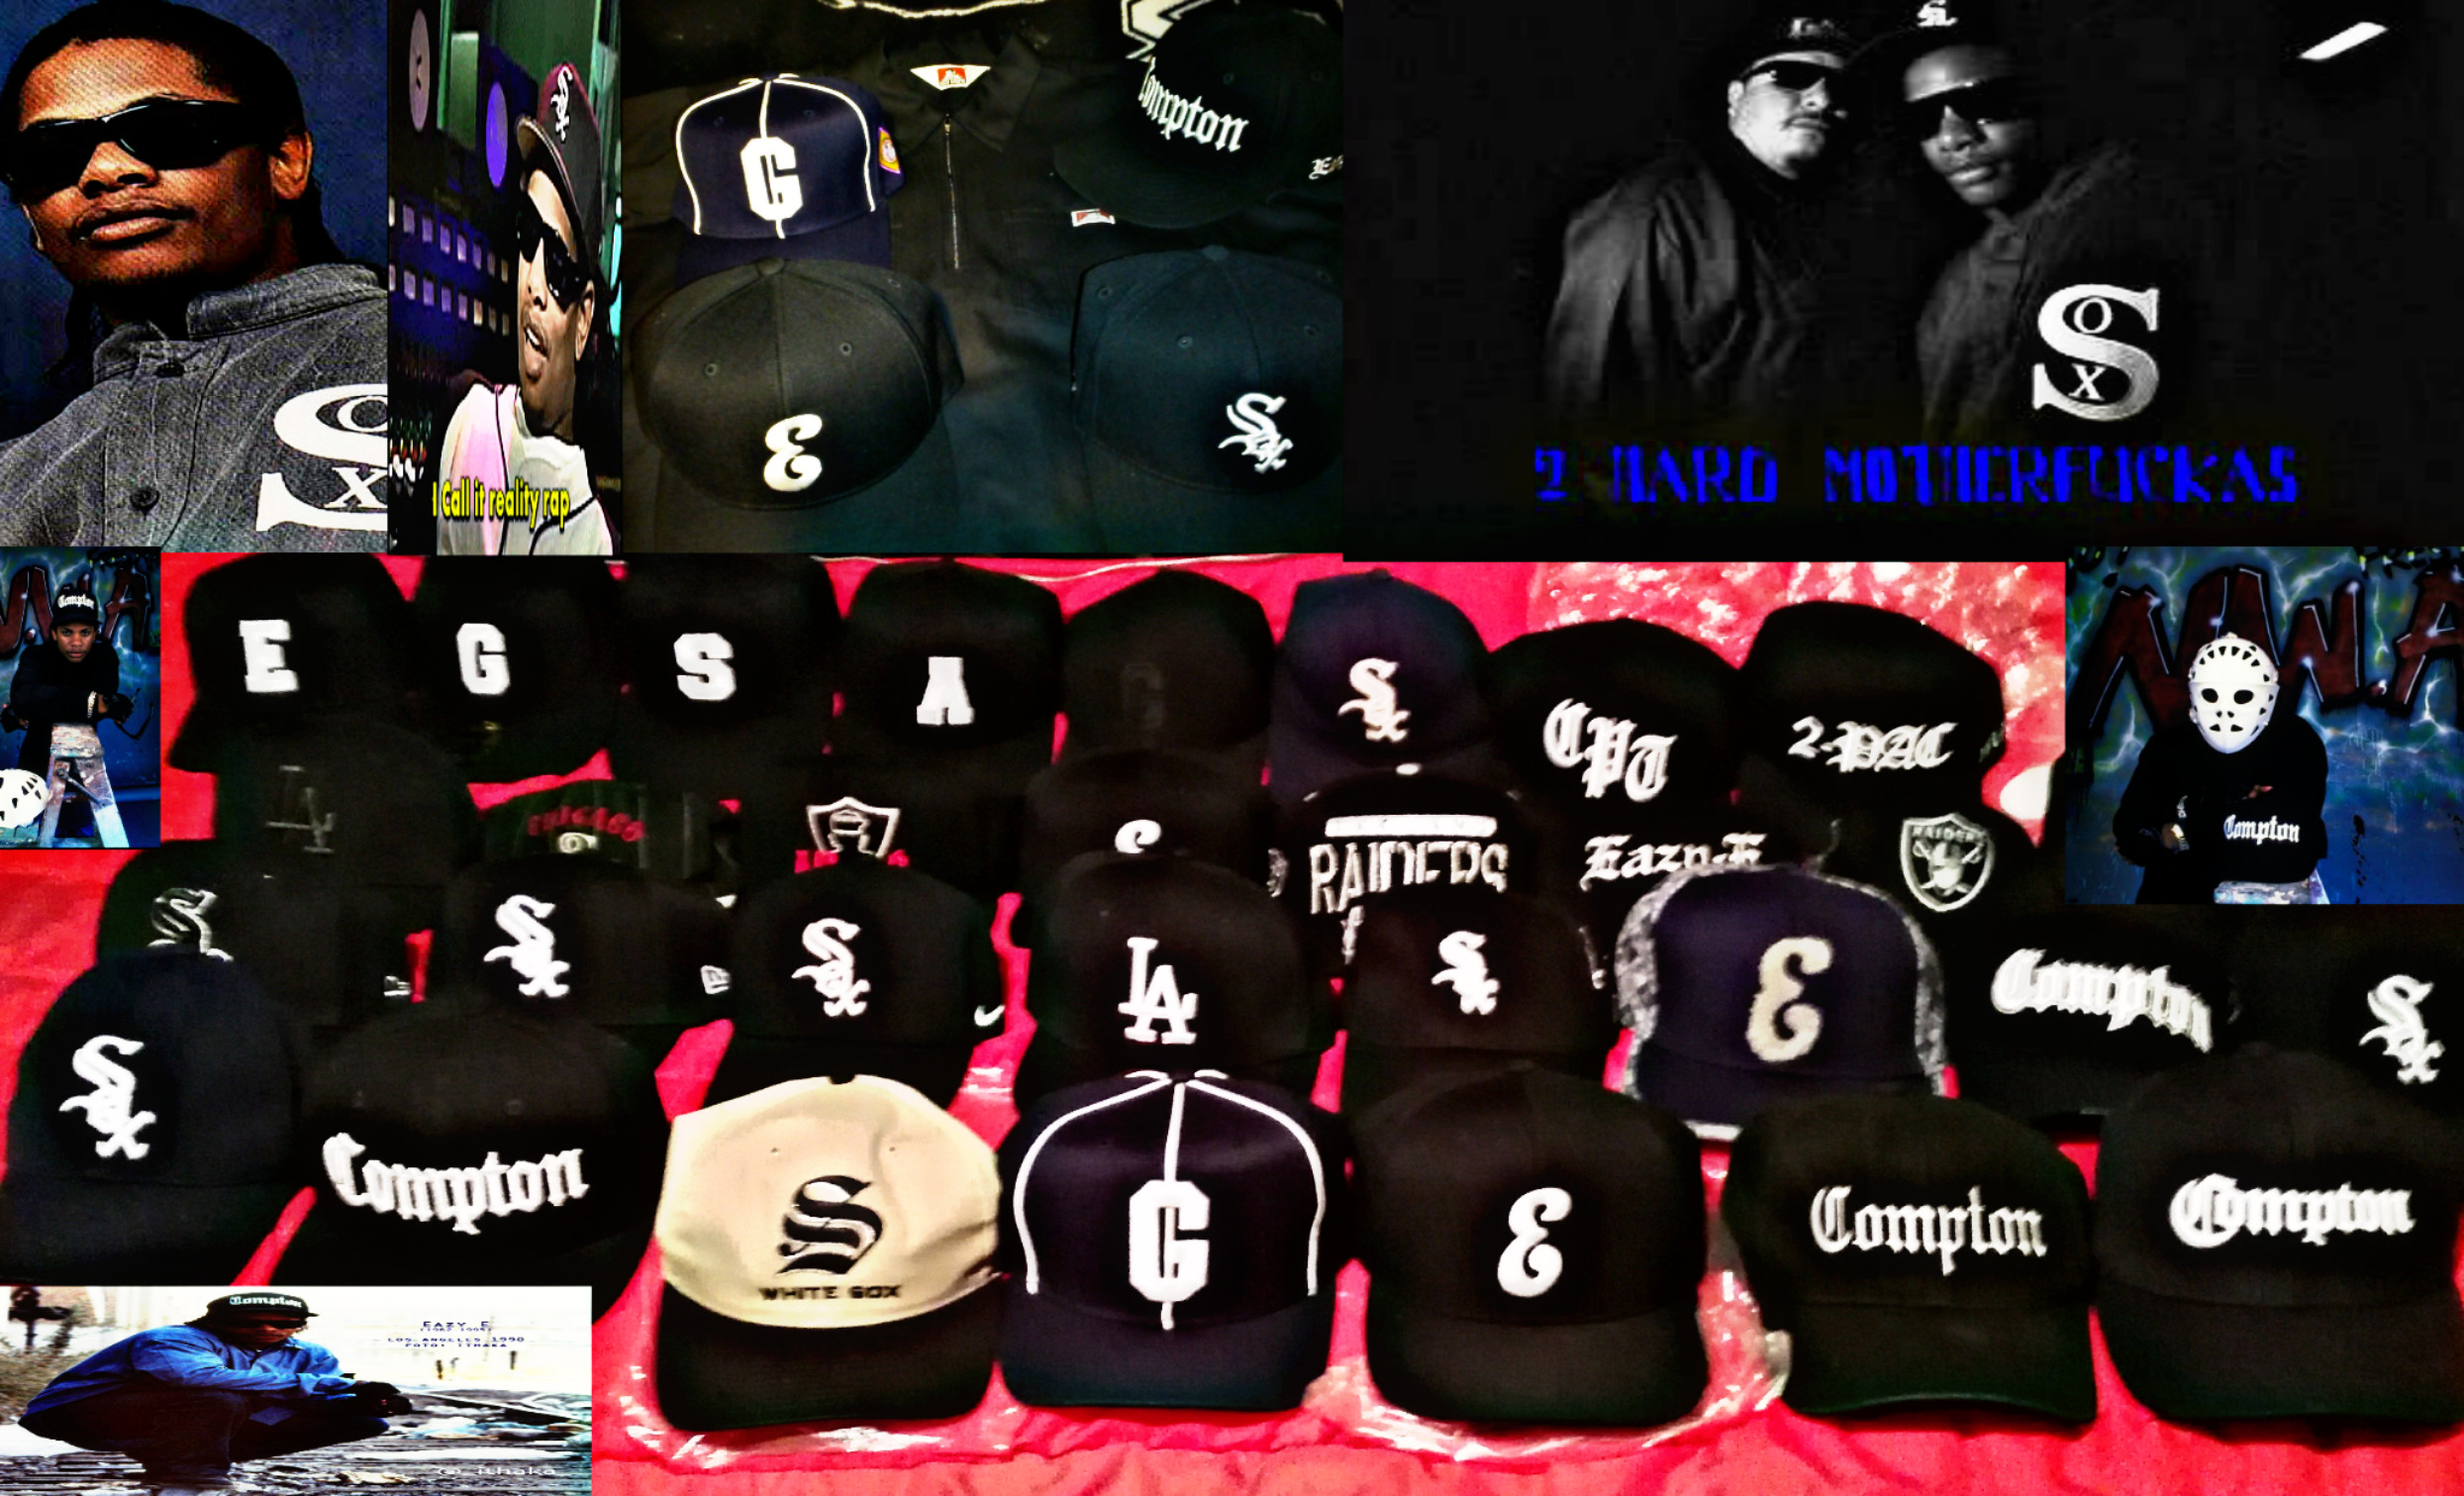 eazye187 images eazy e compton hat s HD wallpaper and background photos